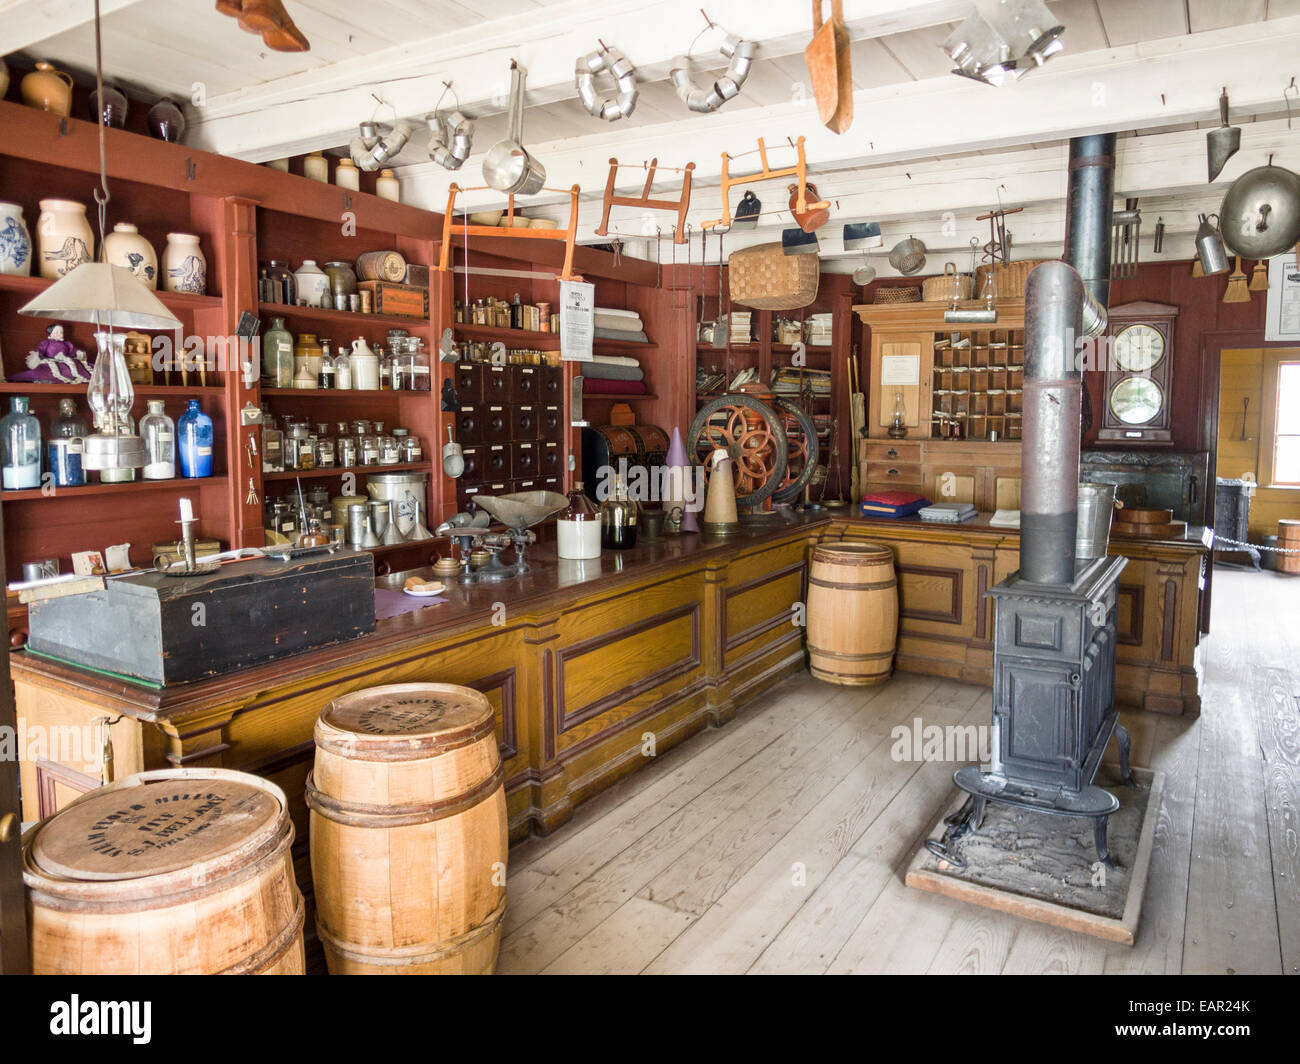 The Crysler General Store in the Village. A fully stocked general store, just full of curiosities. - Stock Image